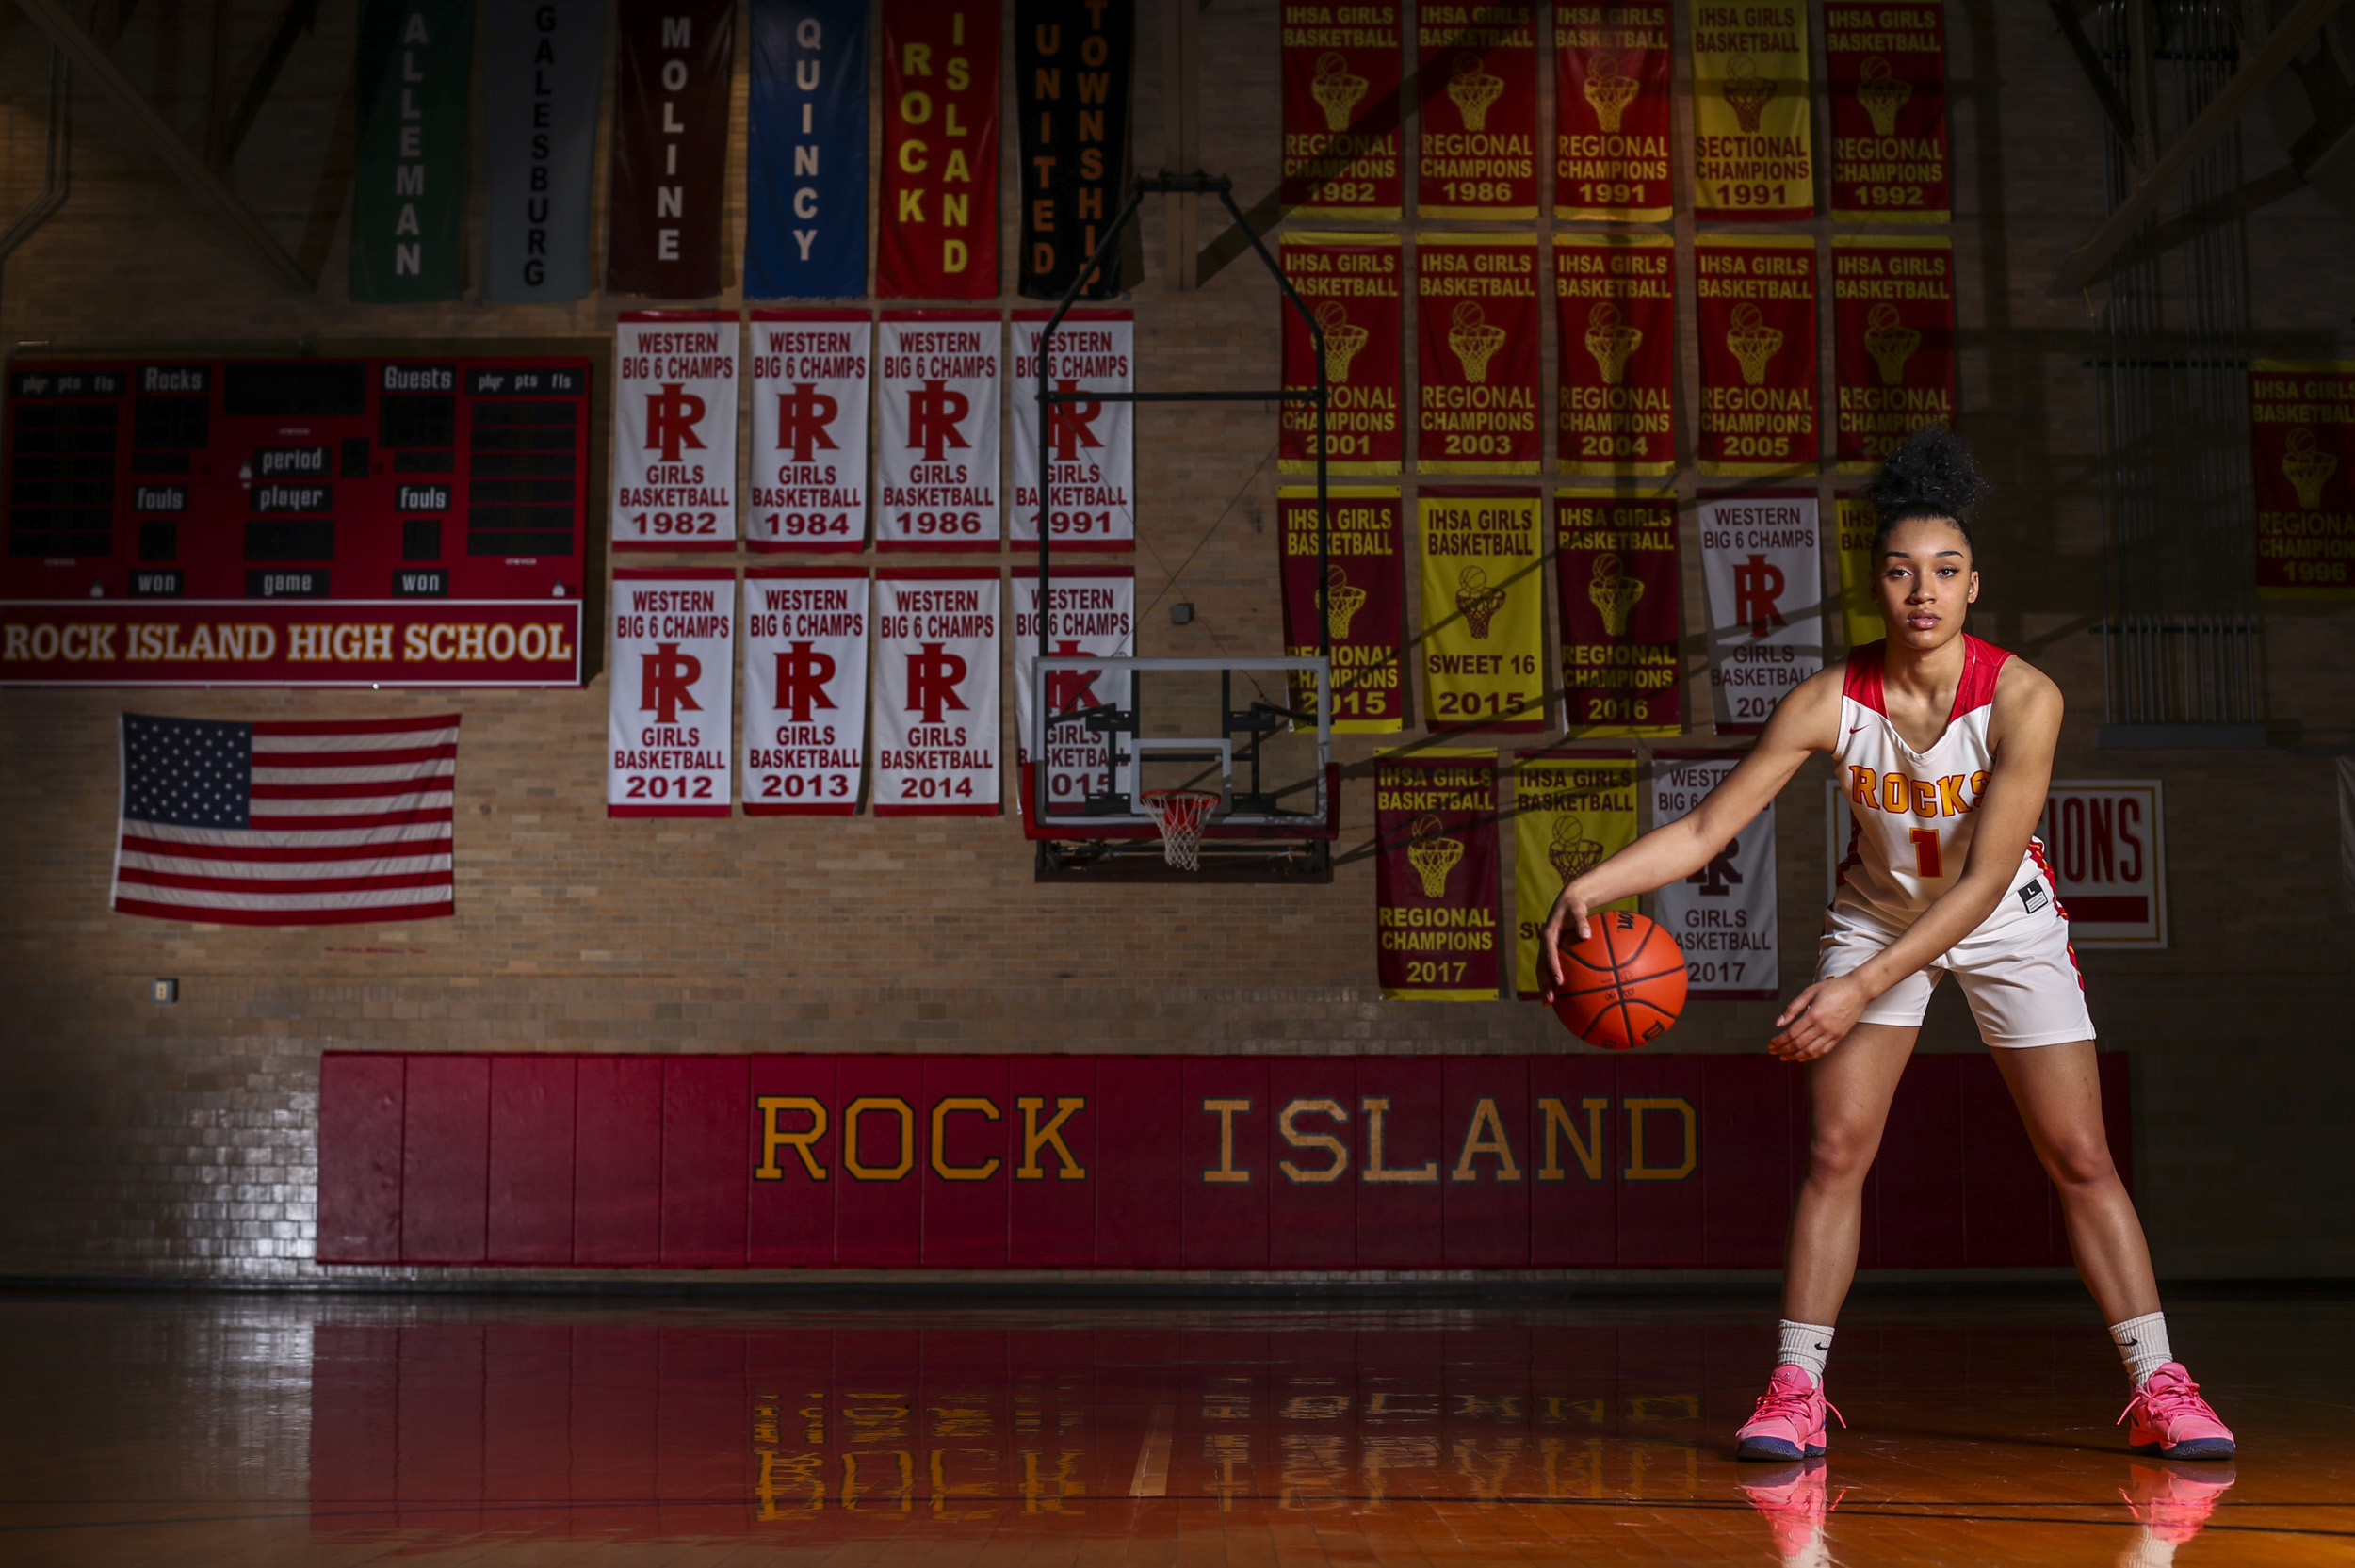 Rock Island senior Brea Beal poses for a photo in the small gym at Rock Island High School, Wednesday, March 13, 2019.